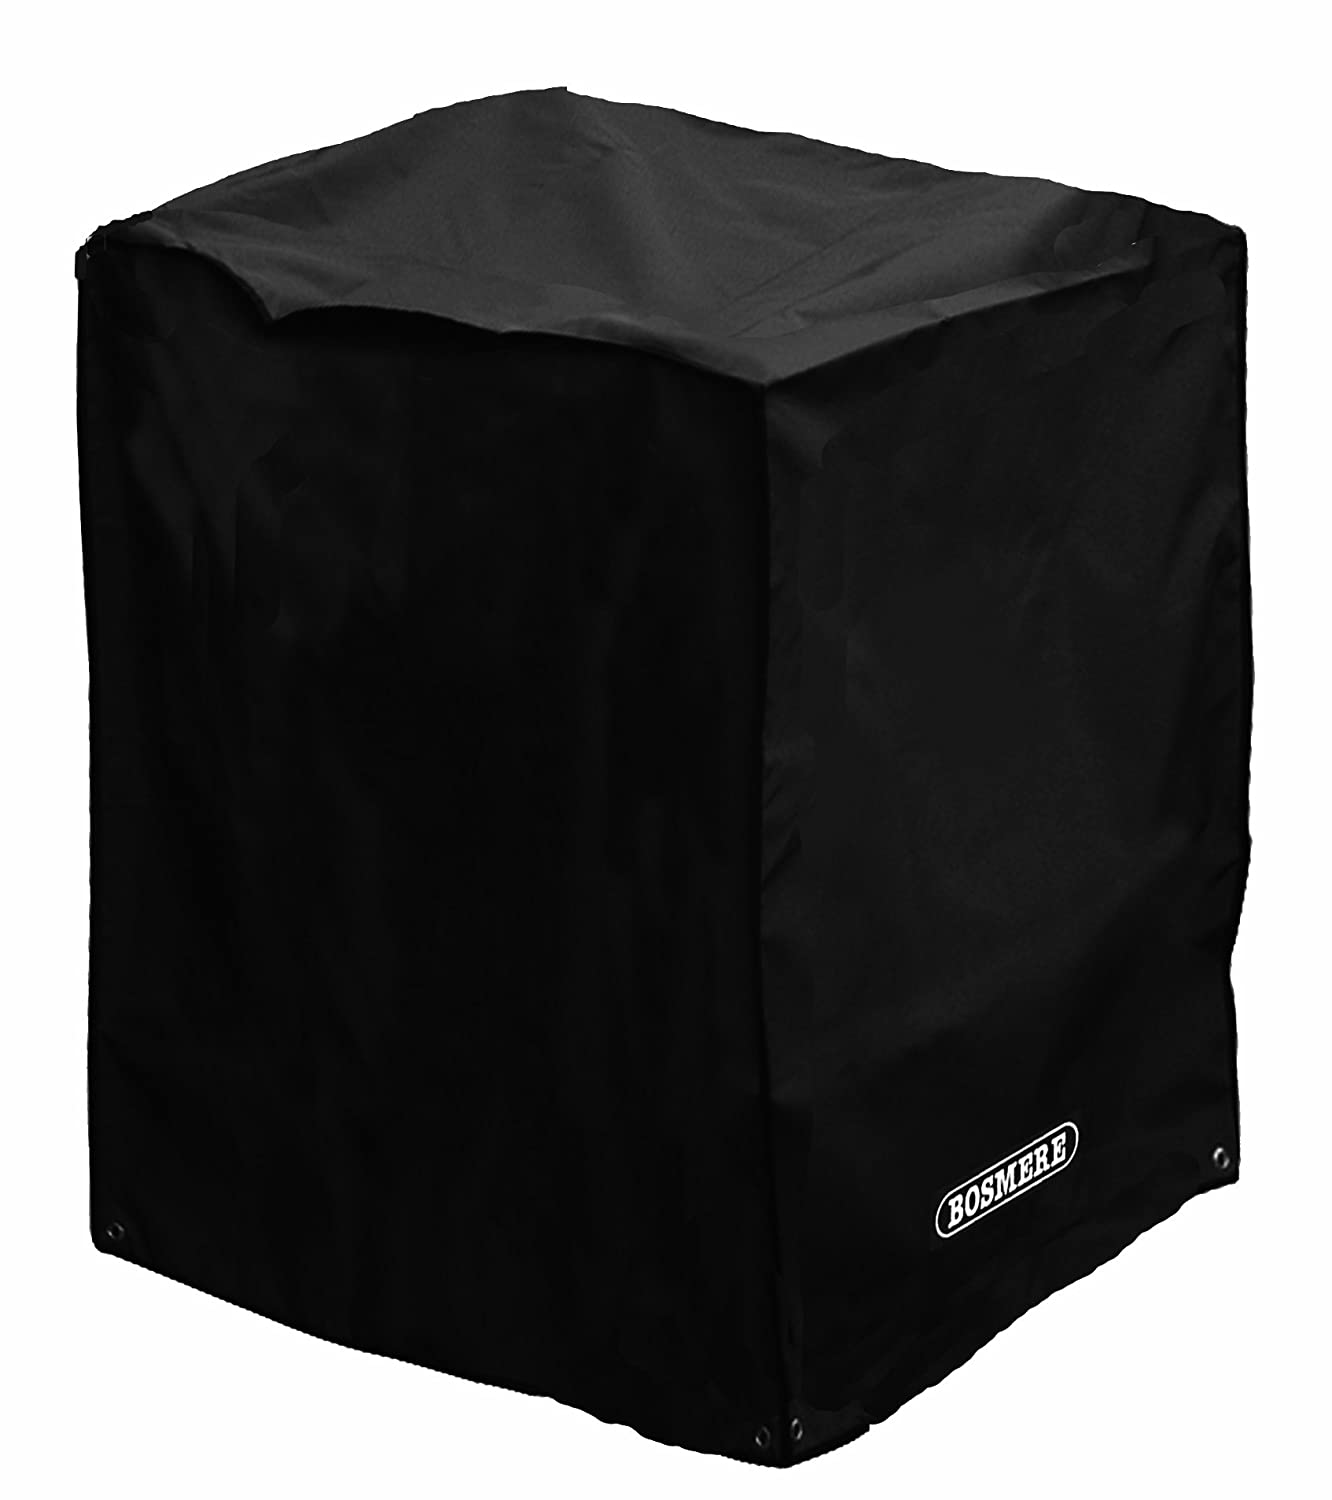 Bosmere D770 STORM BLACK Small Square Fire Pit Cover Bosmere Products Ltd